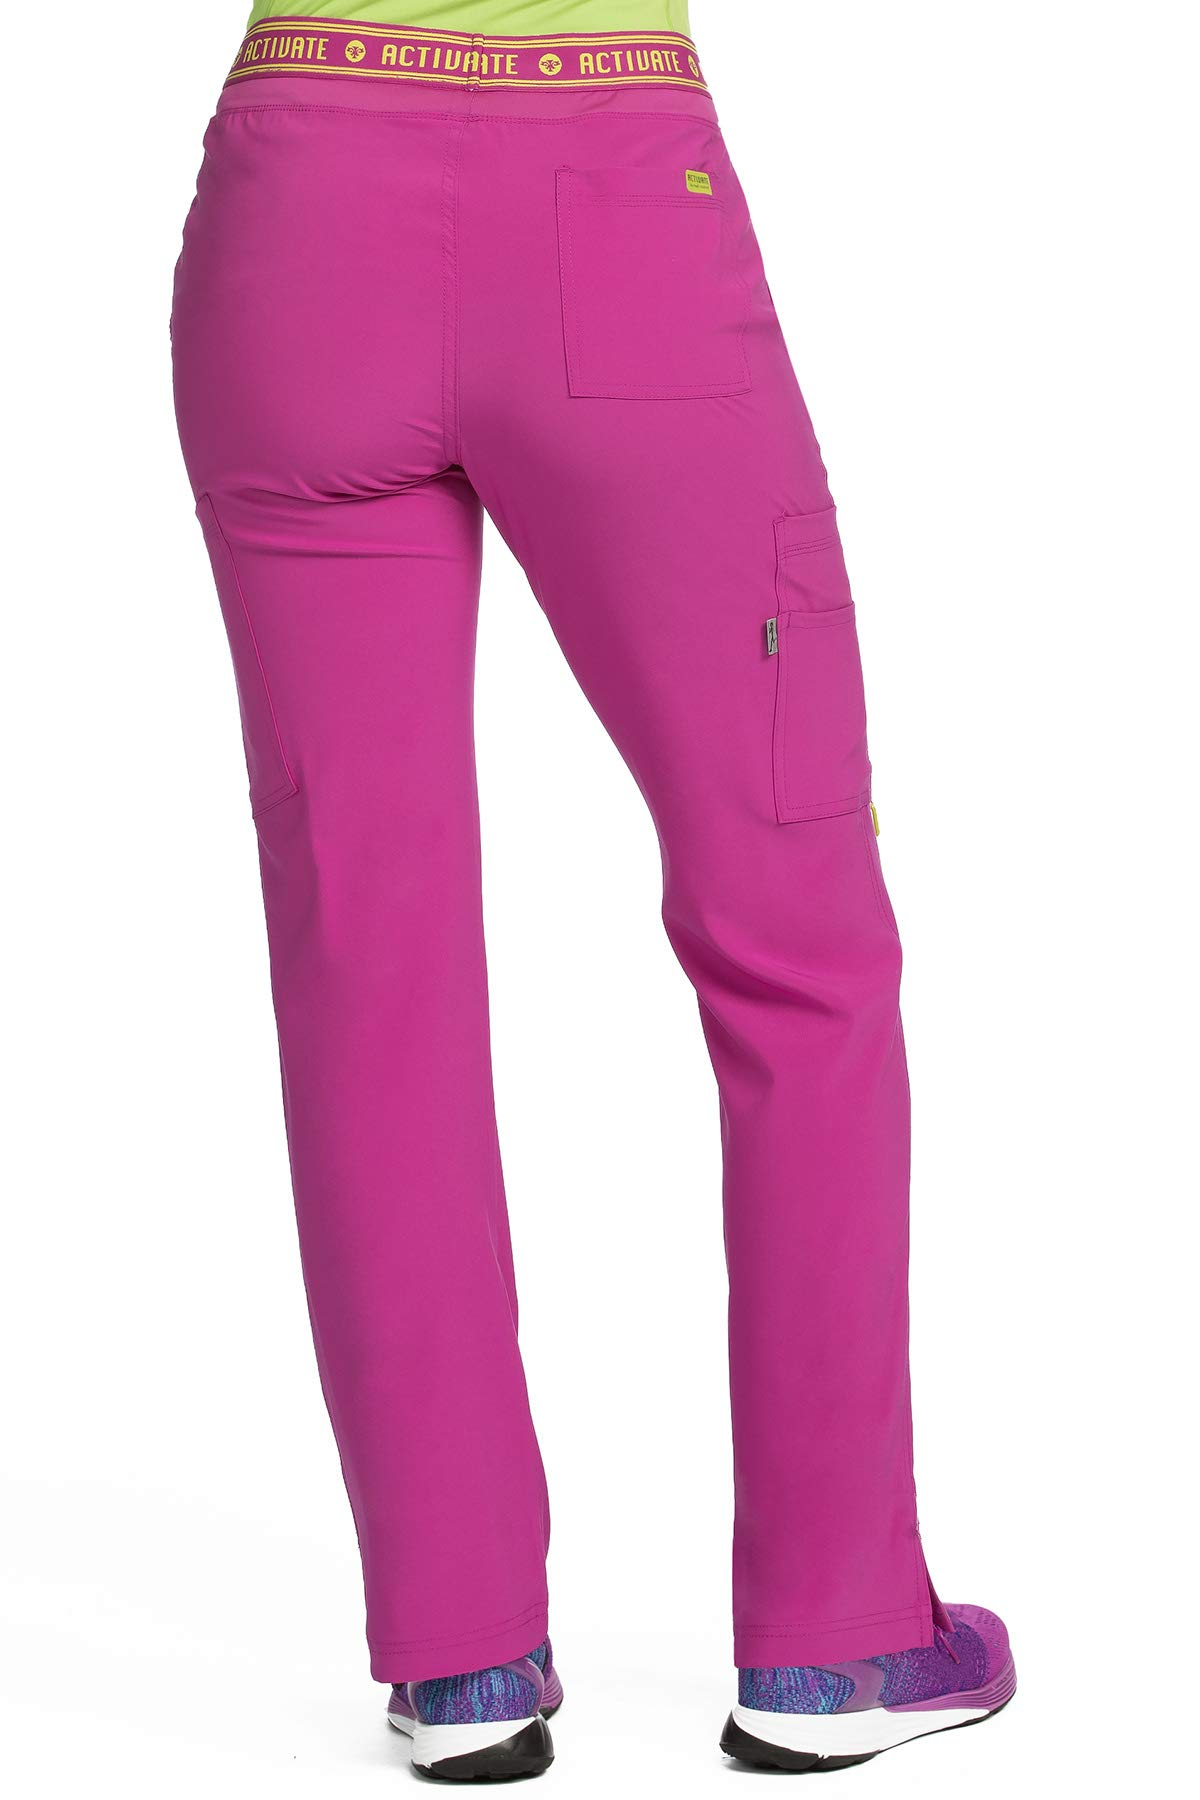 Med Couture Activate Scrub Pants Women, Flow Yoga 2 Cargo Pocket Pant, Magenta, X-Small Tall